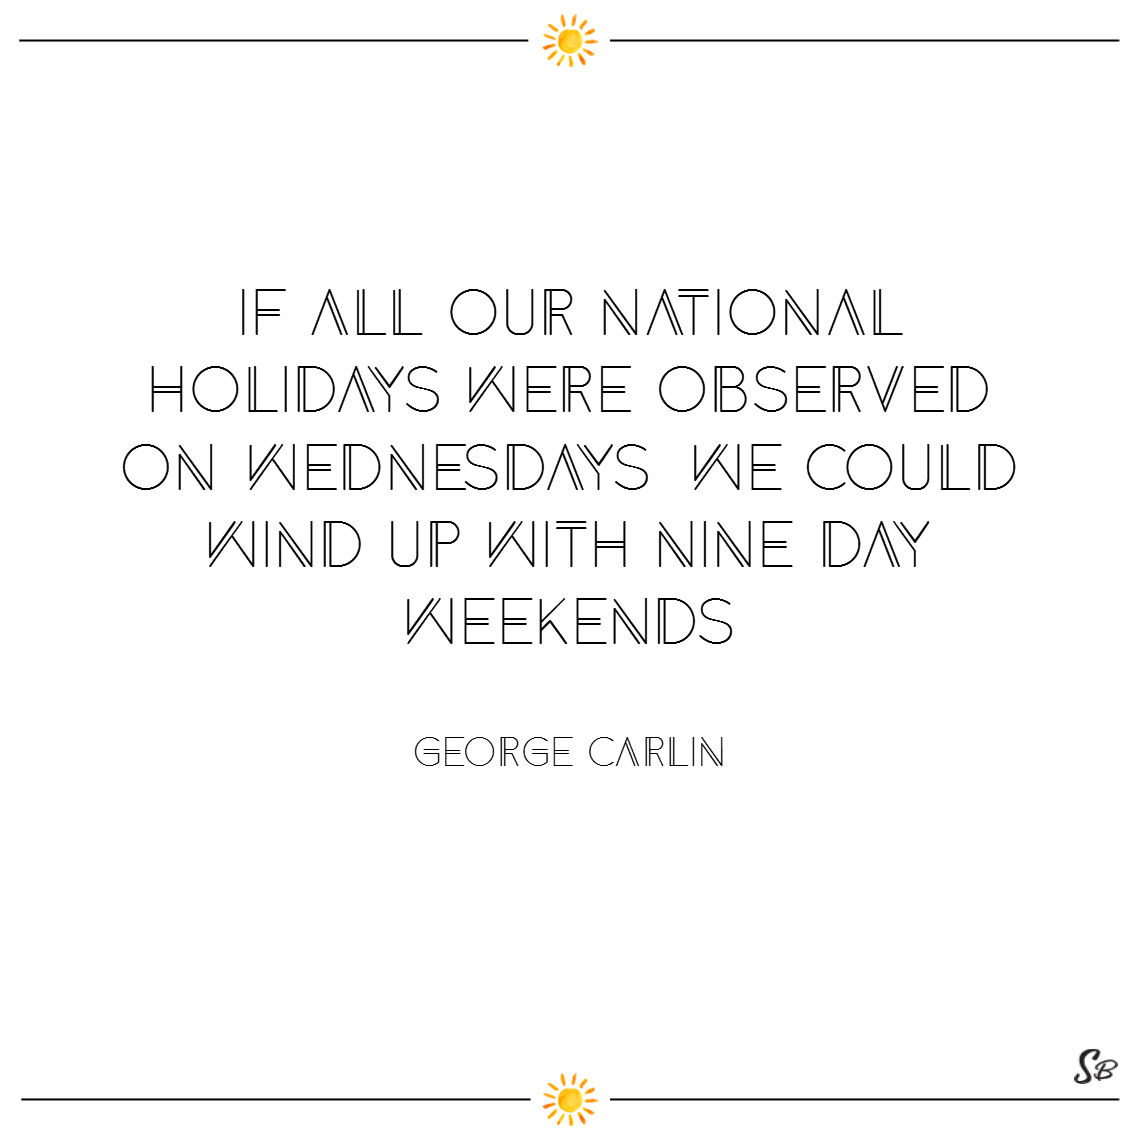 If all our national holidays were observed on wednesdays, we could wind up with nine day weekends. – george carlin